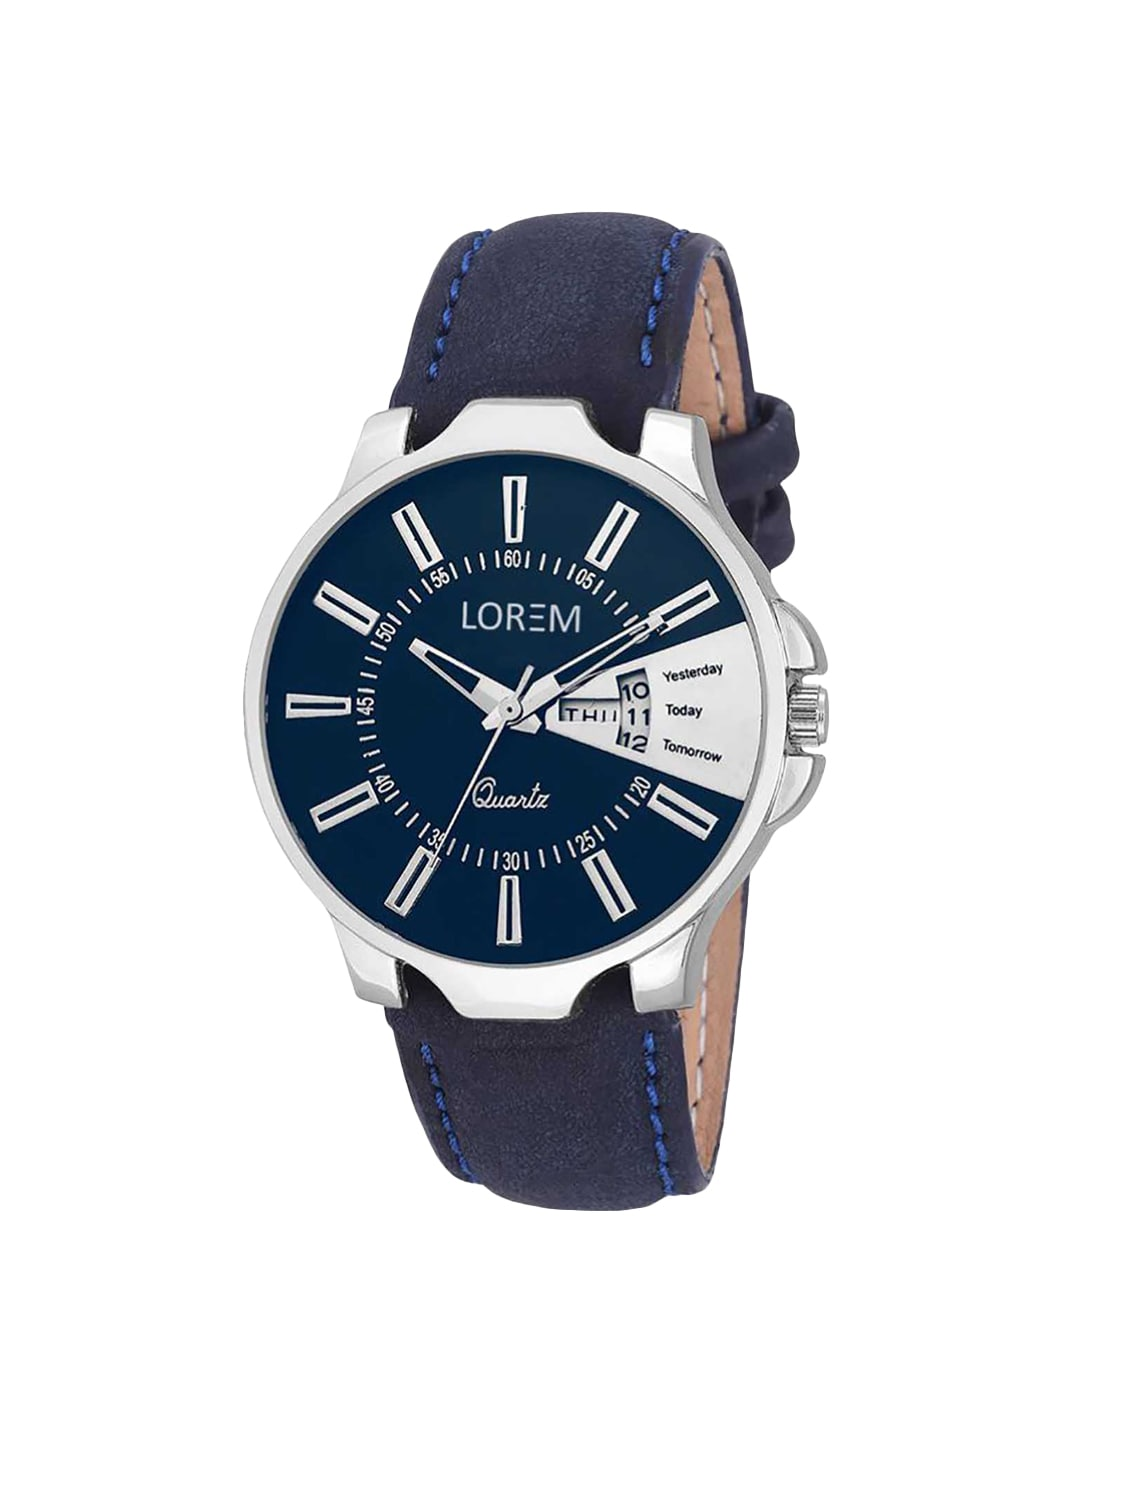 lorem fancy blue color designer dial with day   date analog watch for boys and men's